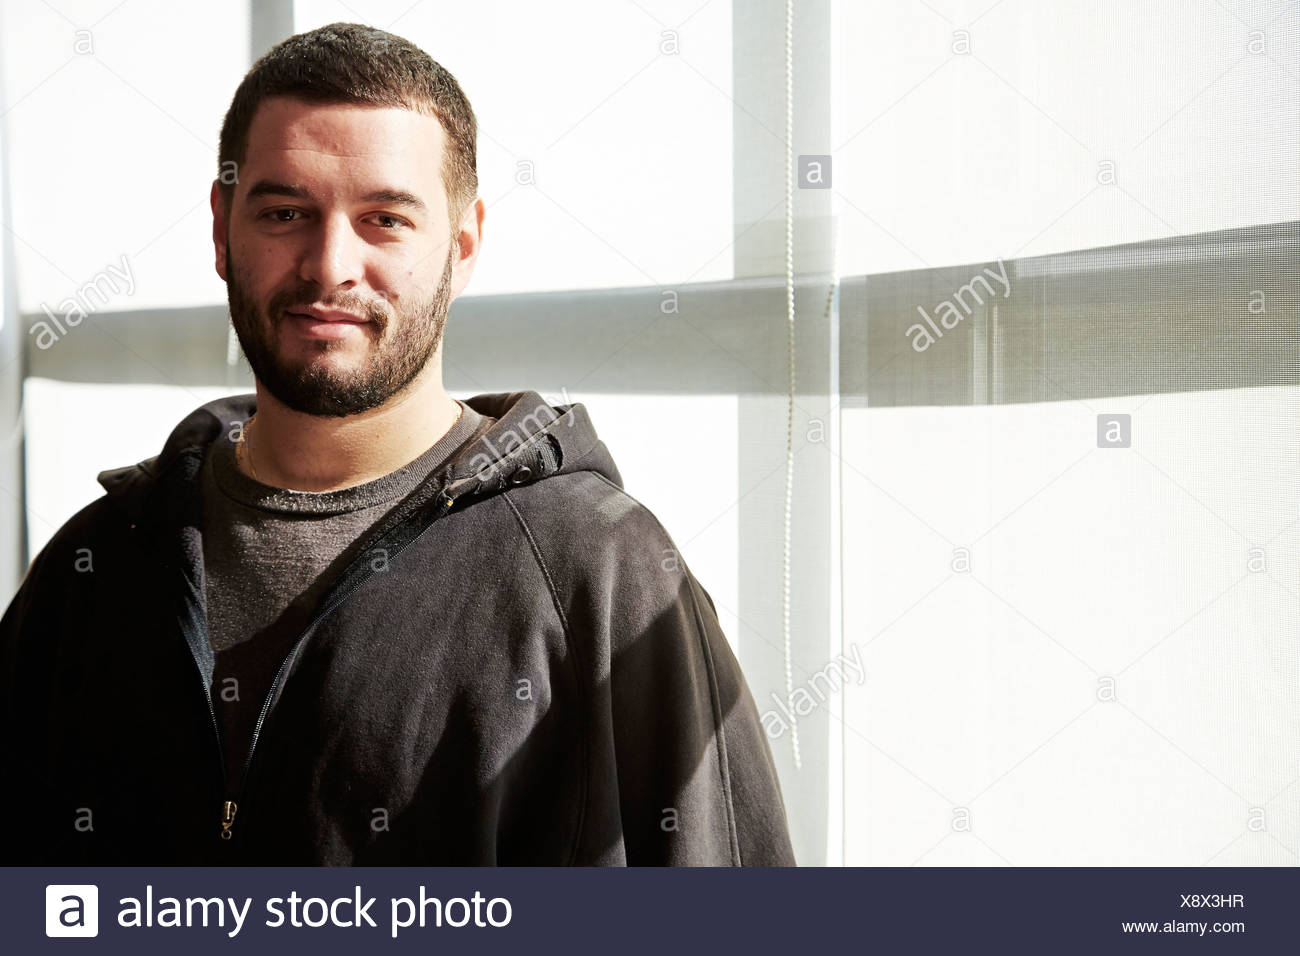 Portrait of young man wearing hooded top Photo Stock